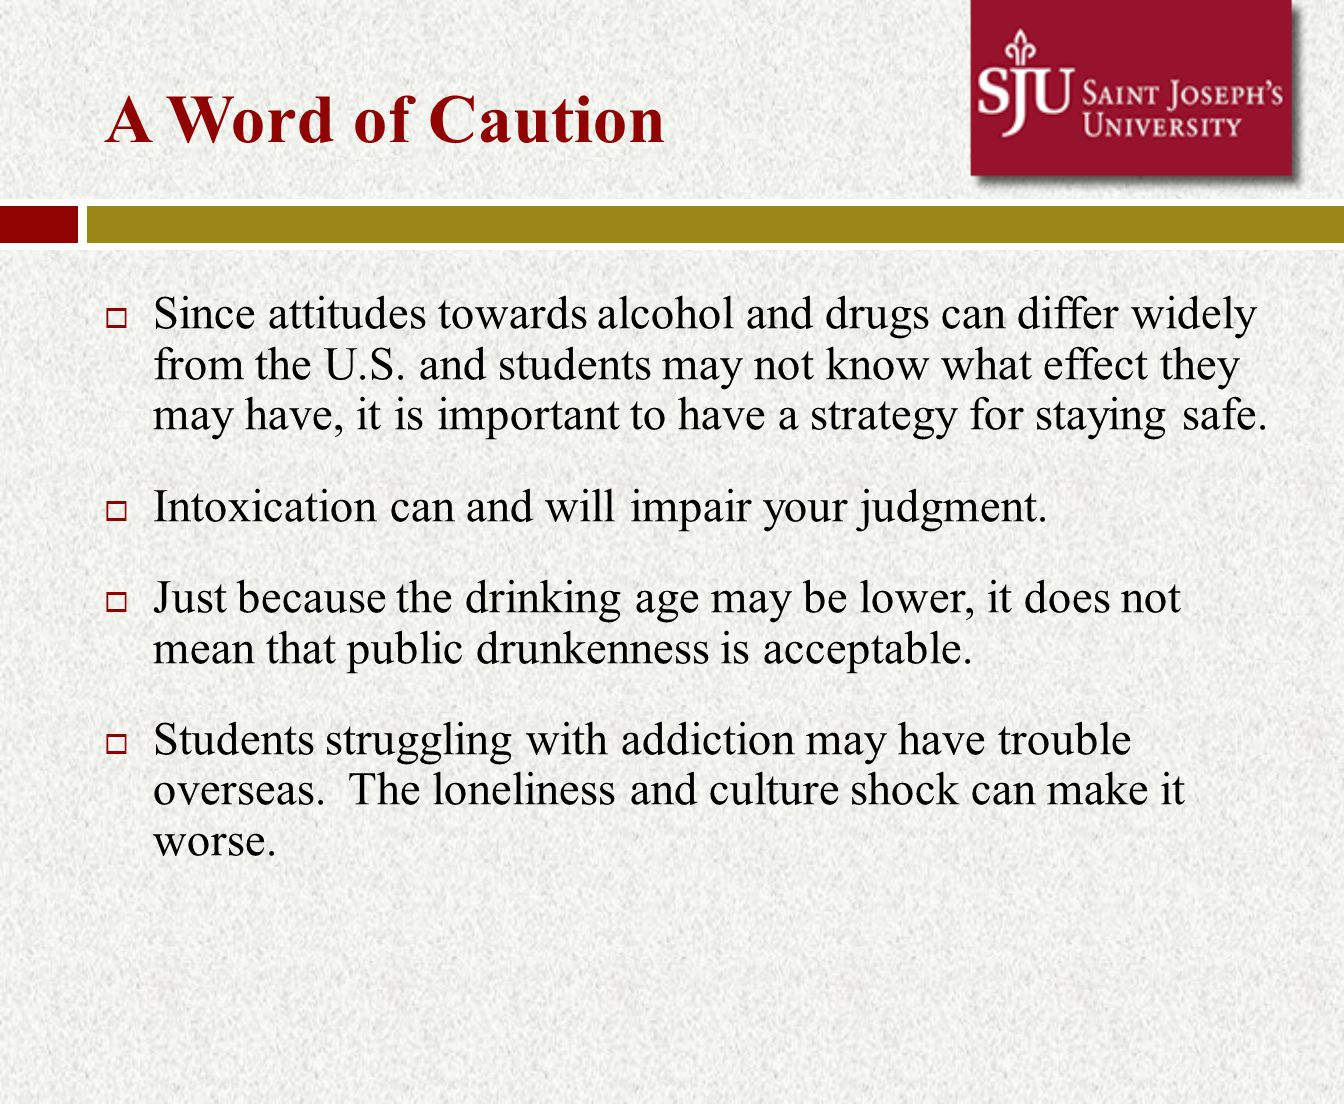 Alcohol-Related Consequences  Emotional, academic, social, legal problems  Language and cultural differences  Frequency of drinking is associated with drinking-related problems  Harm reduction and its application…  too much + too fast = high risk